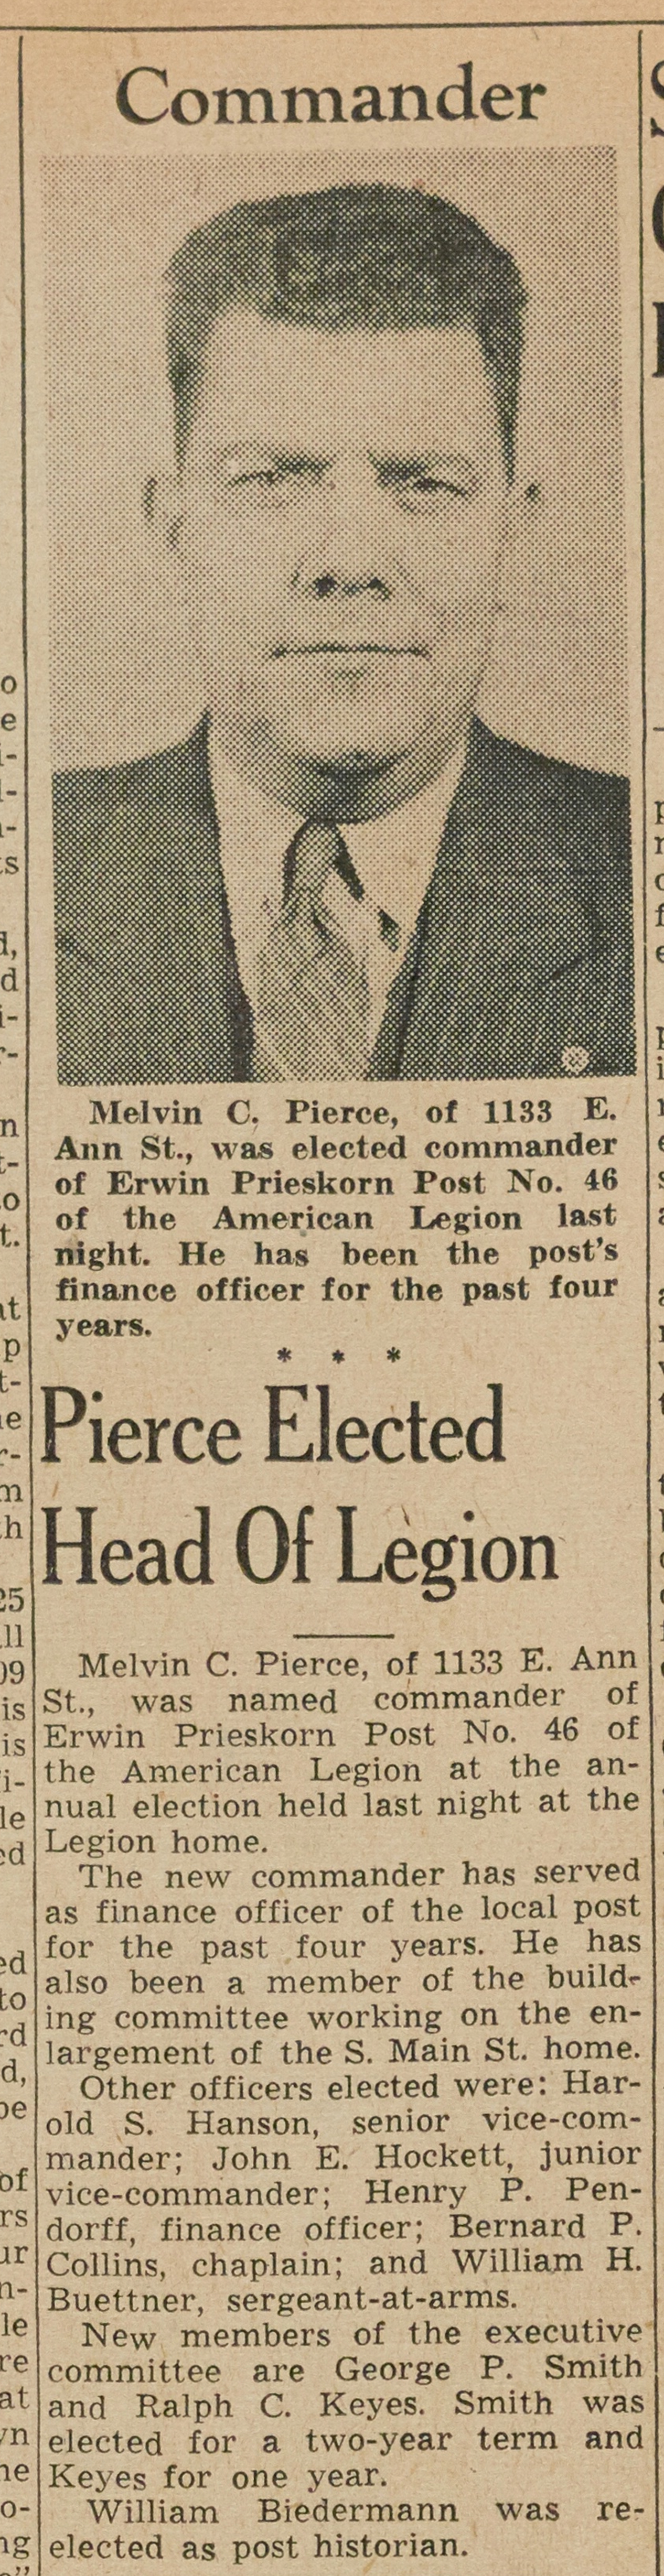 Pierce Elected Head Of Legion image